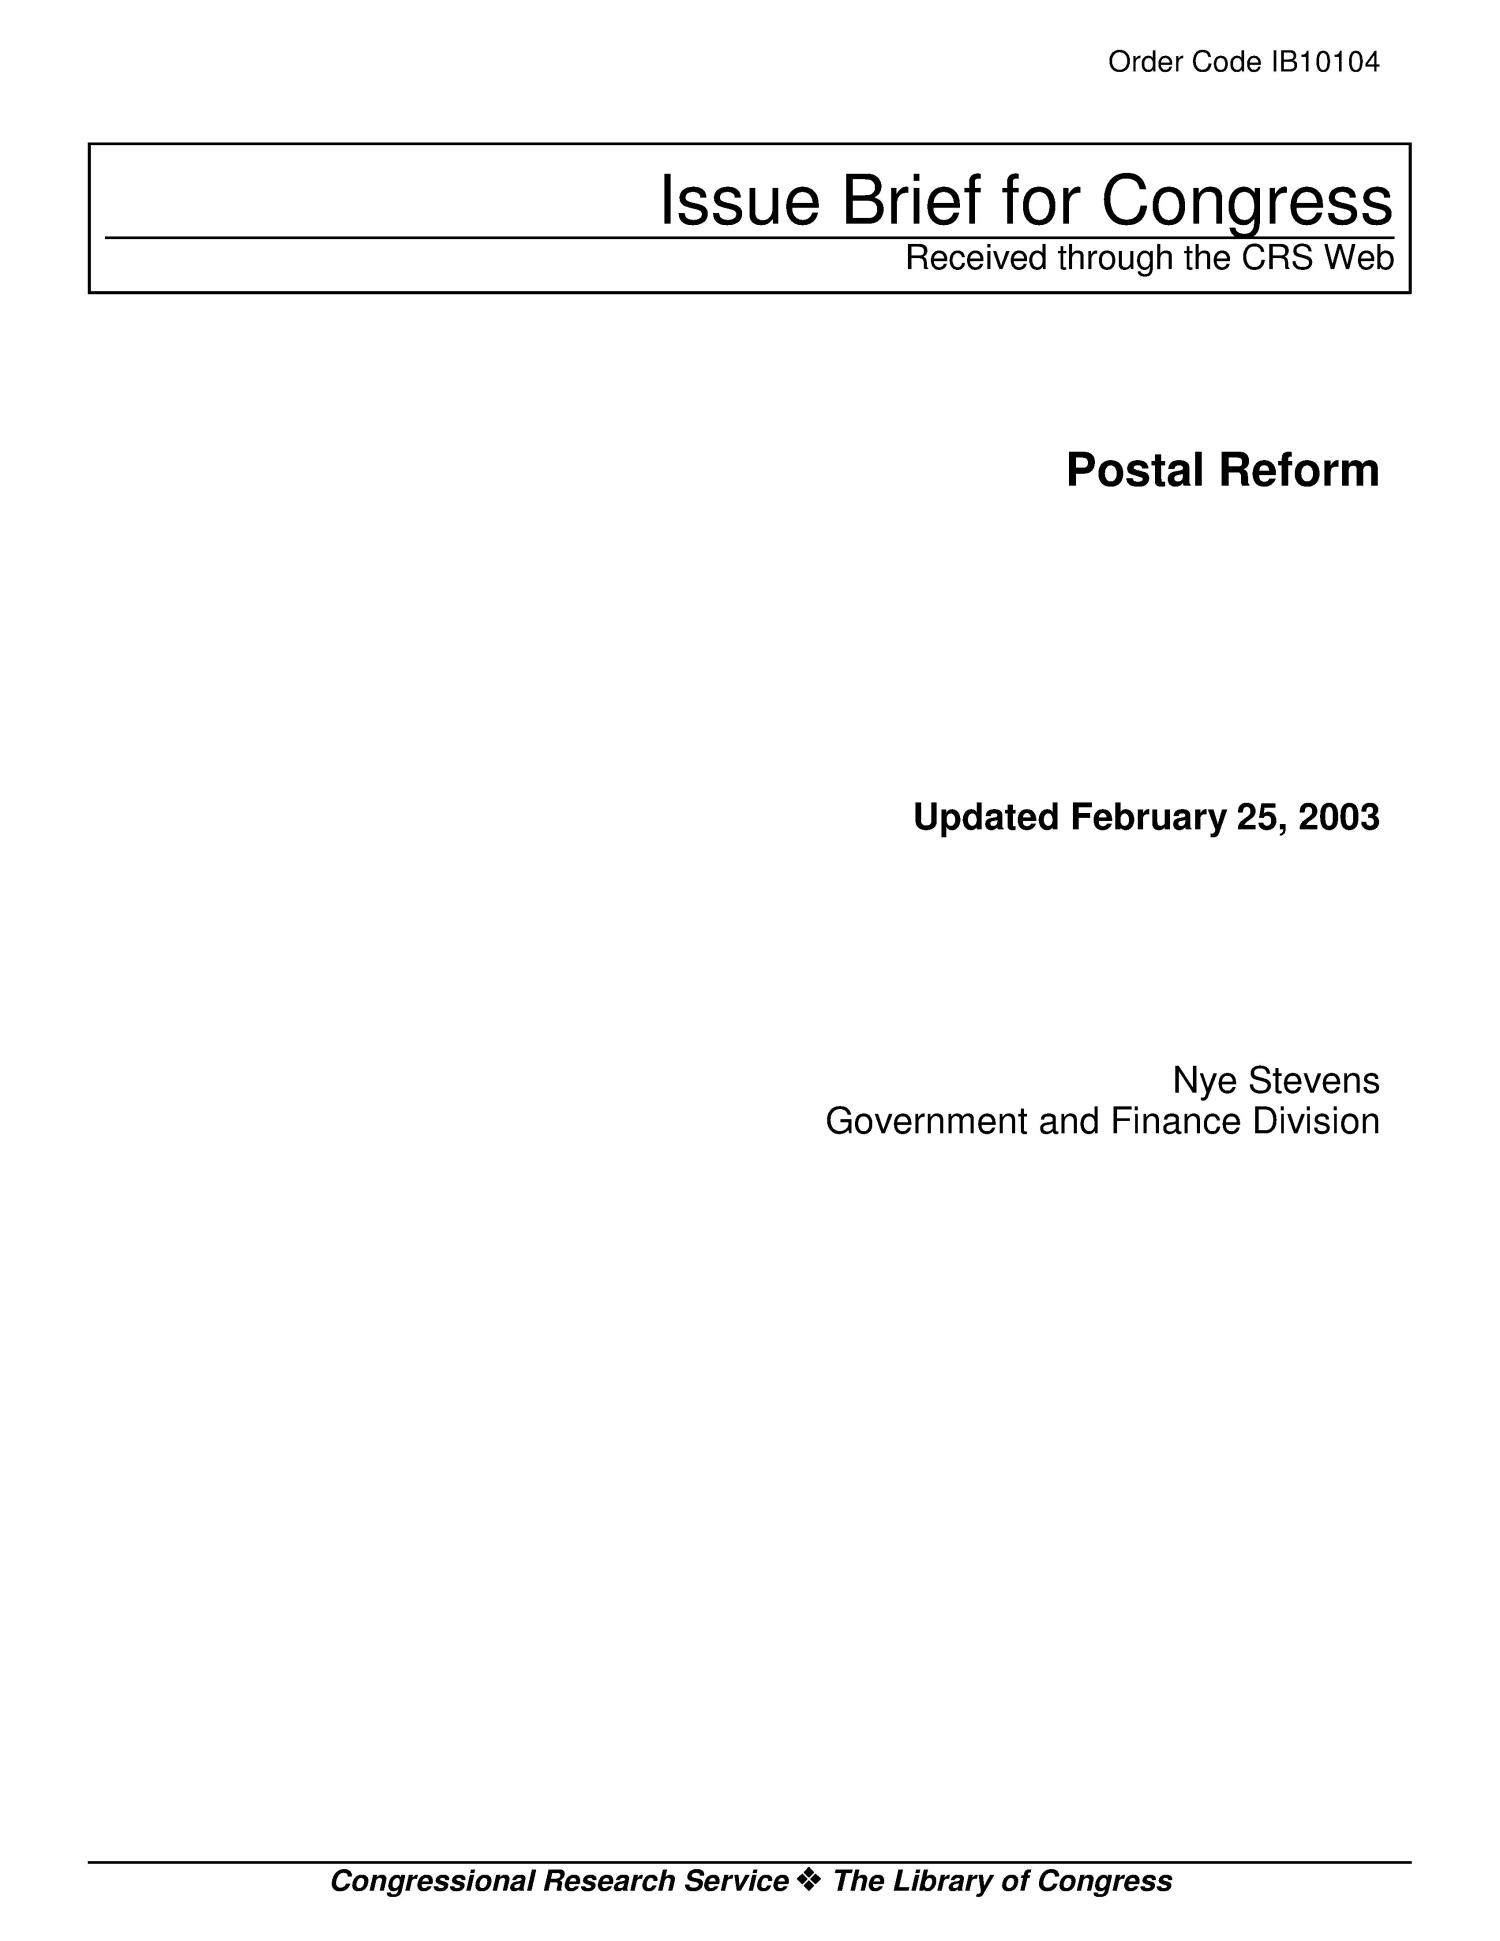 Postal Reform                                                                                                      [Sequence #]: 1 of 15